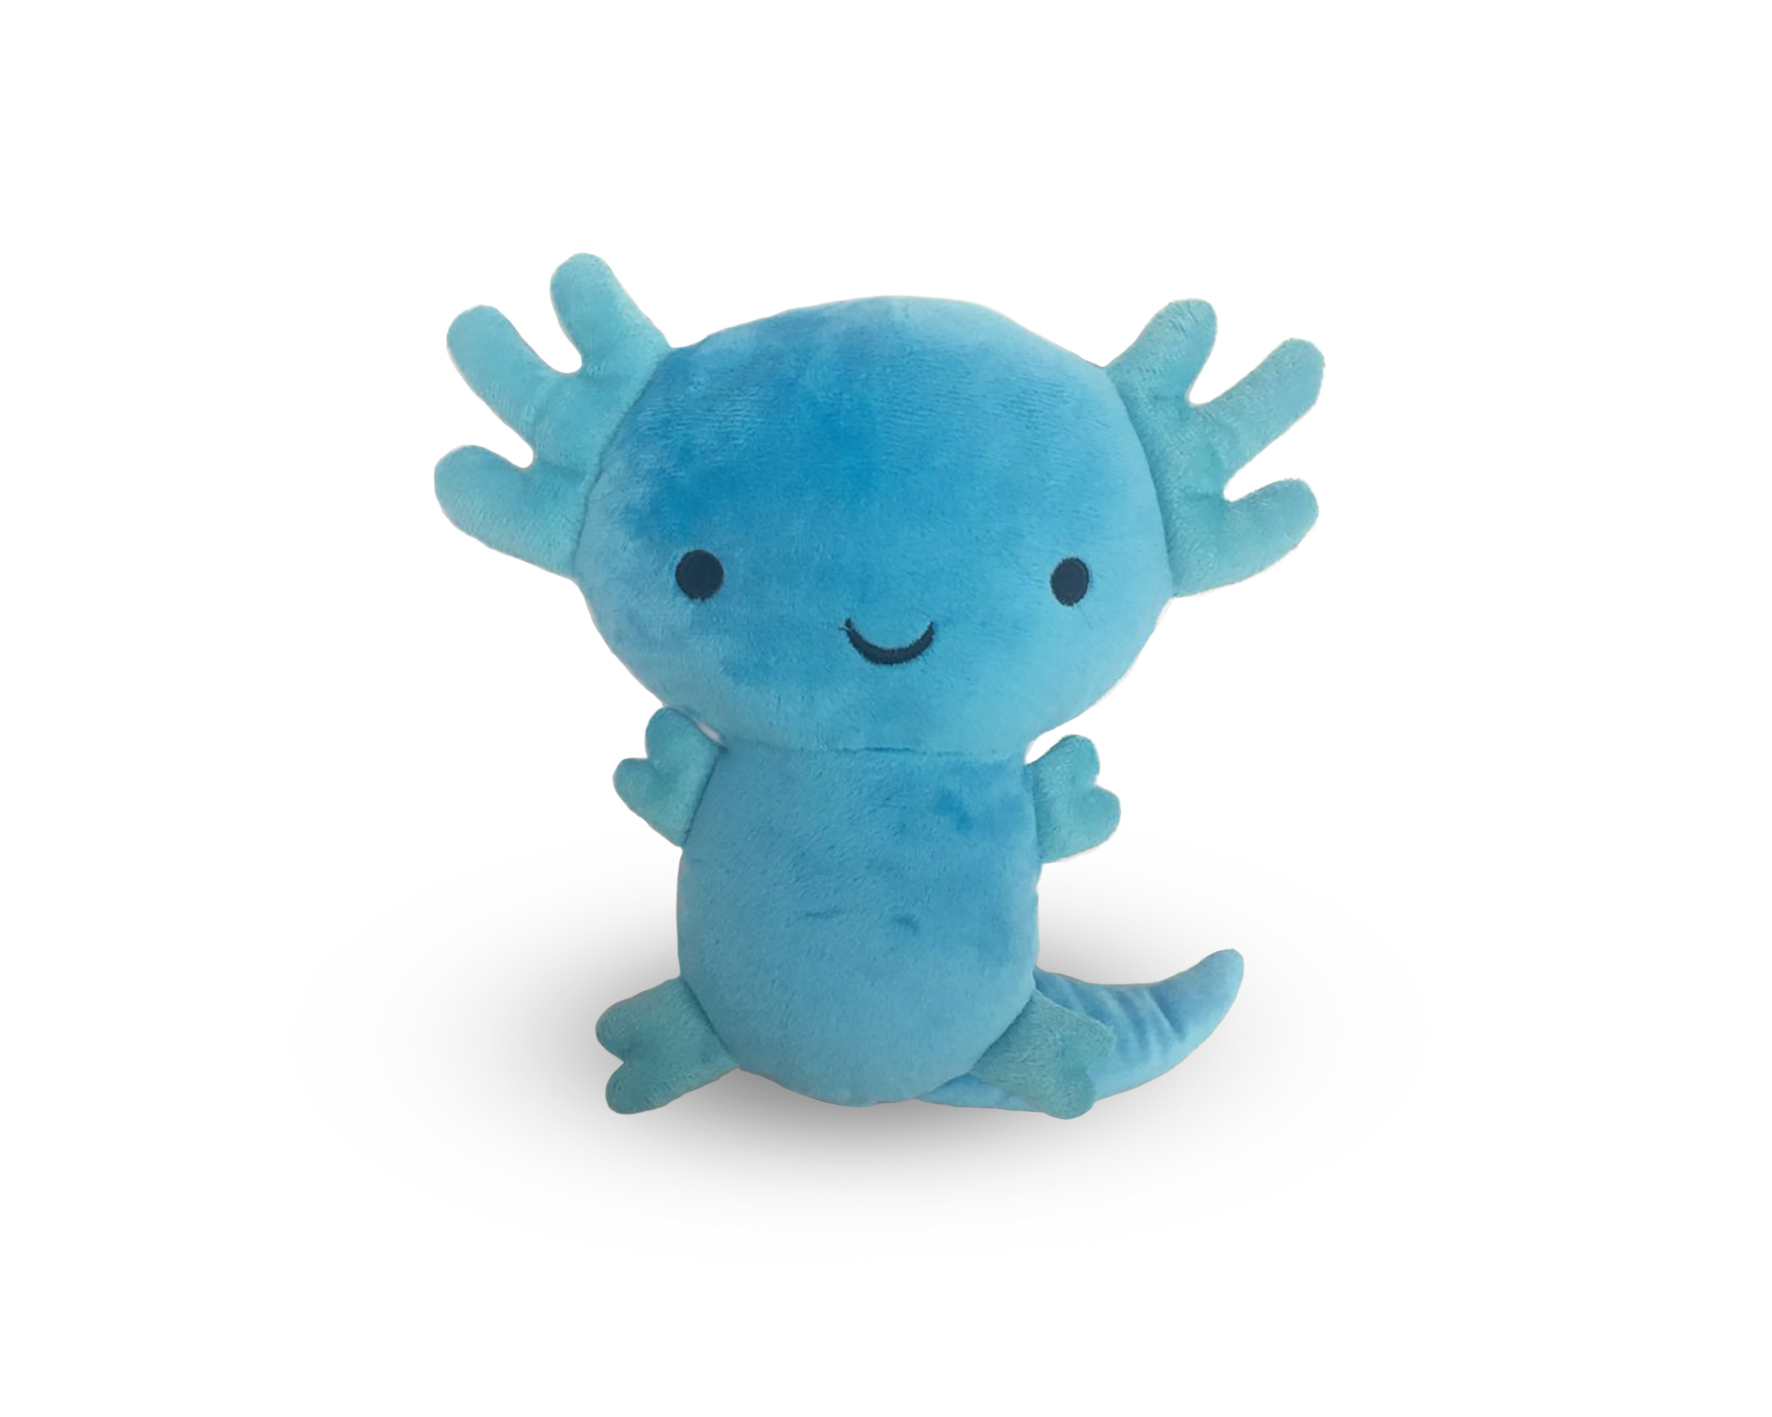 Copy of Ajolote plushie